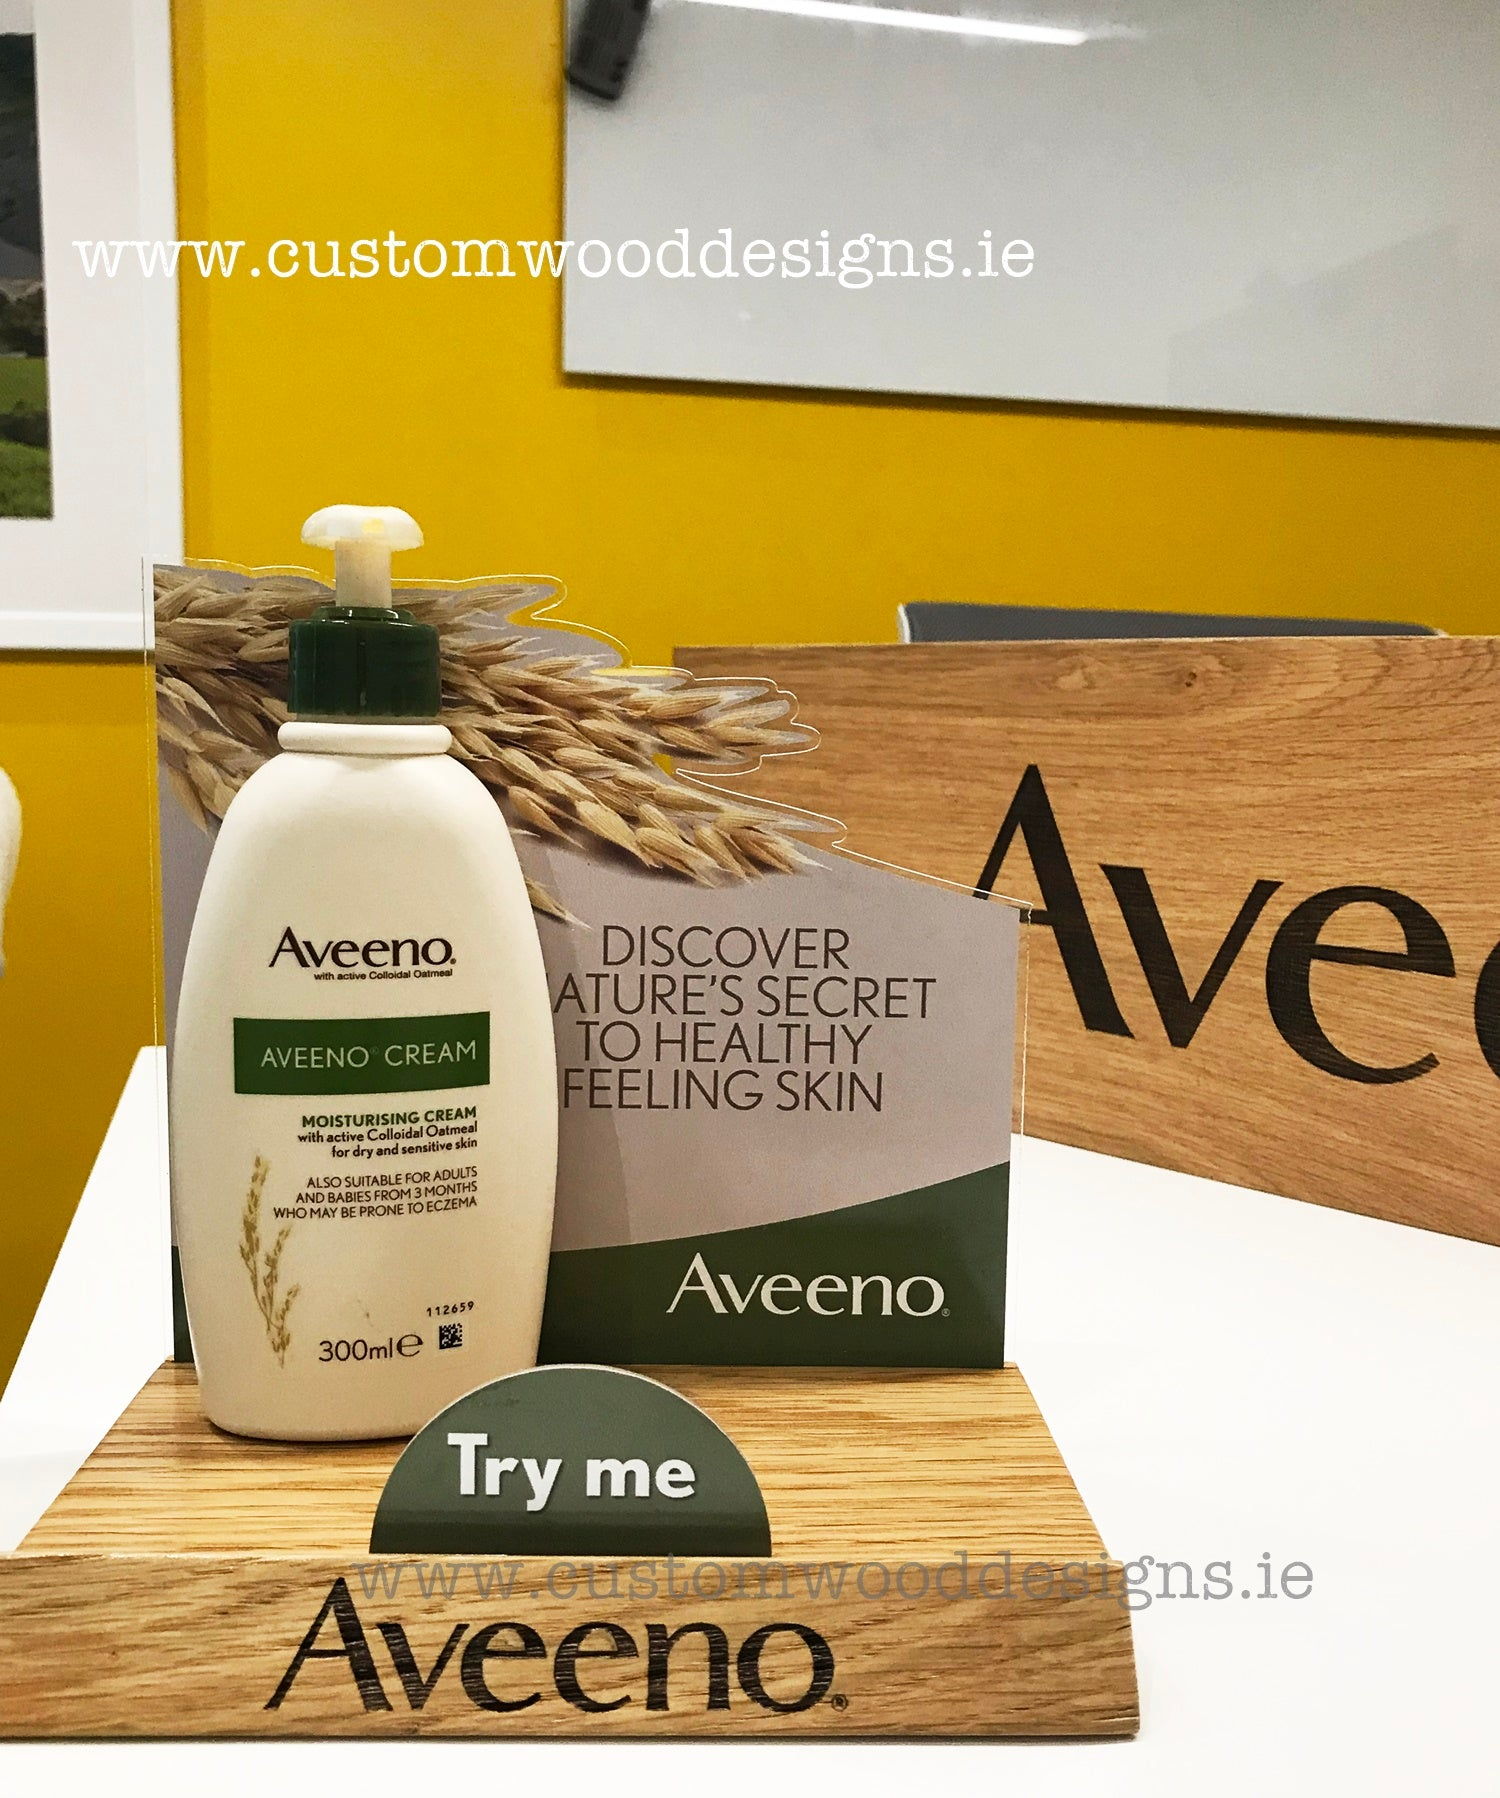 aveeno point of sale display irish manufacturer point od sale maker producer free standing unit display producer maker Ireland Dublin signs maker dublin beanding promotional product maker producer ireland dublin timber wooden festival stands the best sign amker ireland the best point of sale maker Dublin stuffing product wood promotional point of saele maker Dublin Ireland point of sale producer irish producer fsdu counter display units counter retail display specialists retail space display sepcialists retail wooden display shop wooden display maker manufacturer shop retail maker wood producer pint of sale branded crates branded items